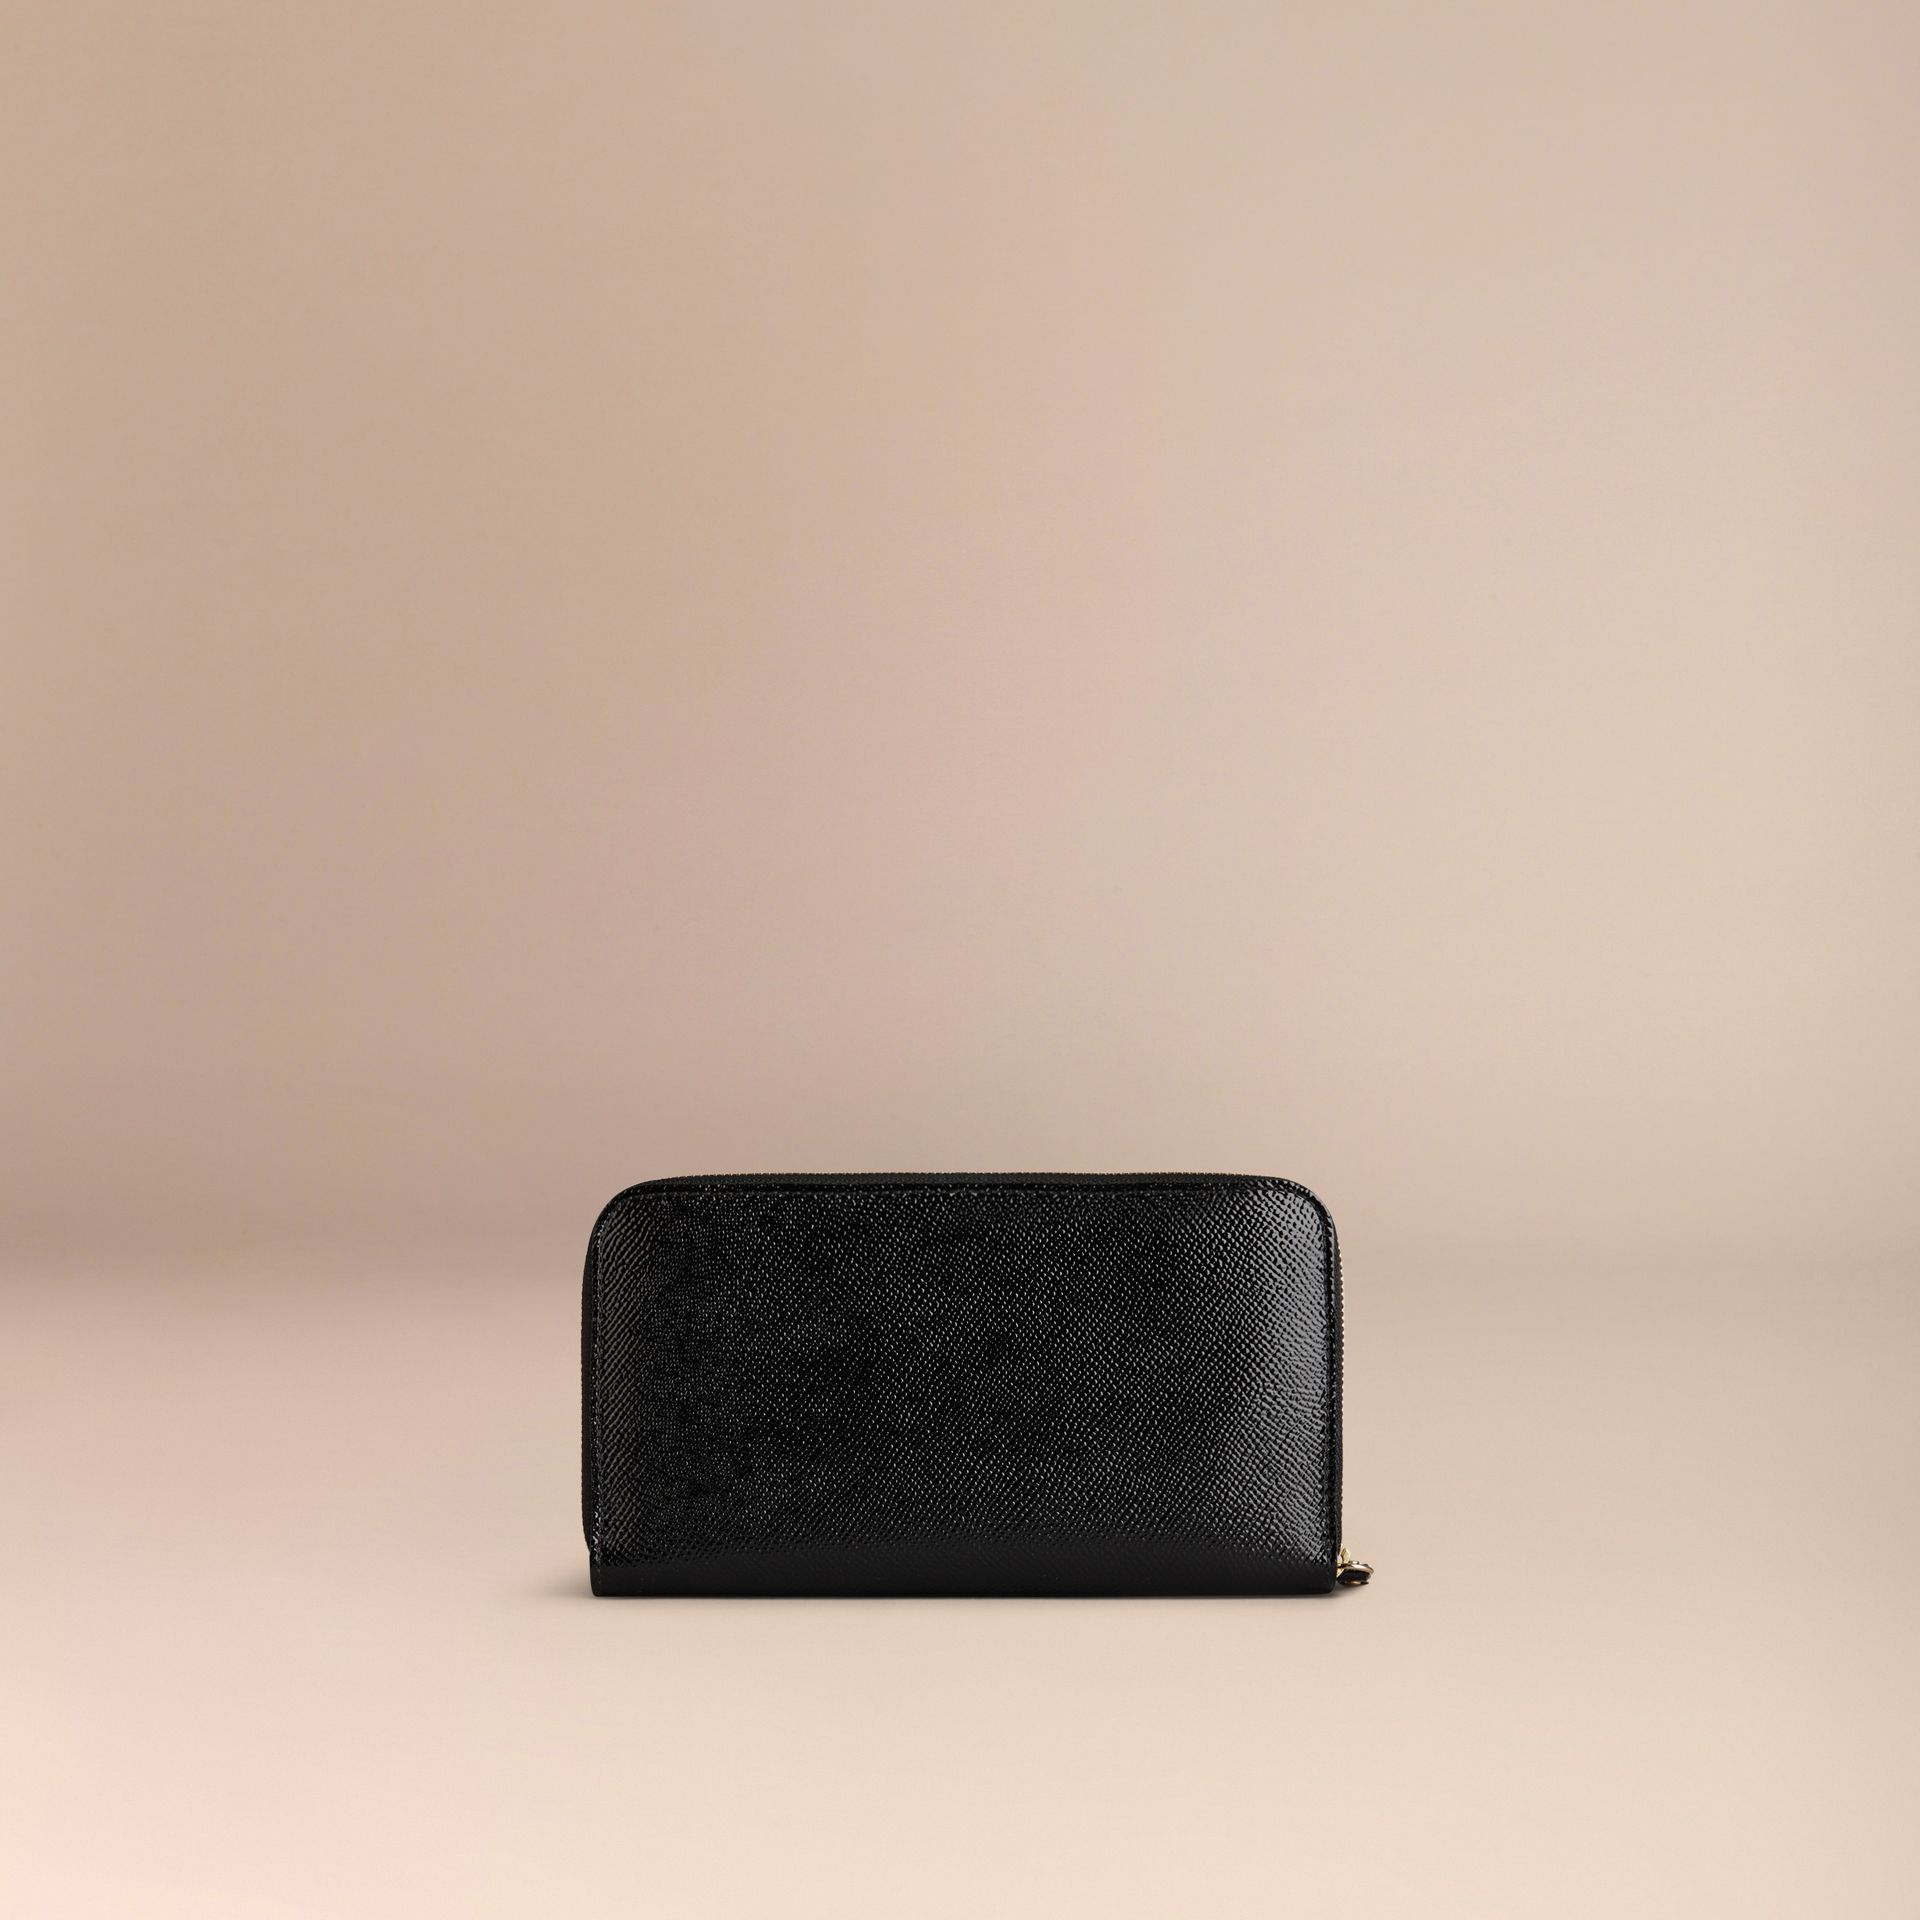 Black Patent London Leather Ziparound Wallet Black - gallery image 3